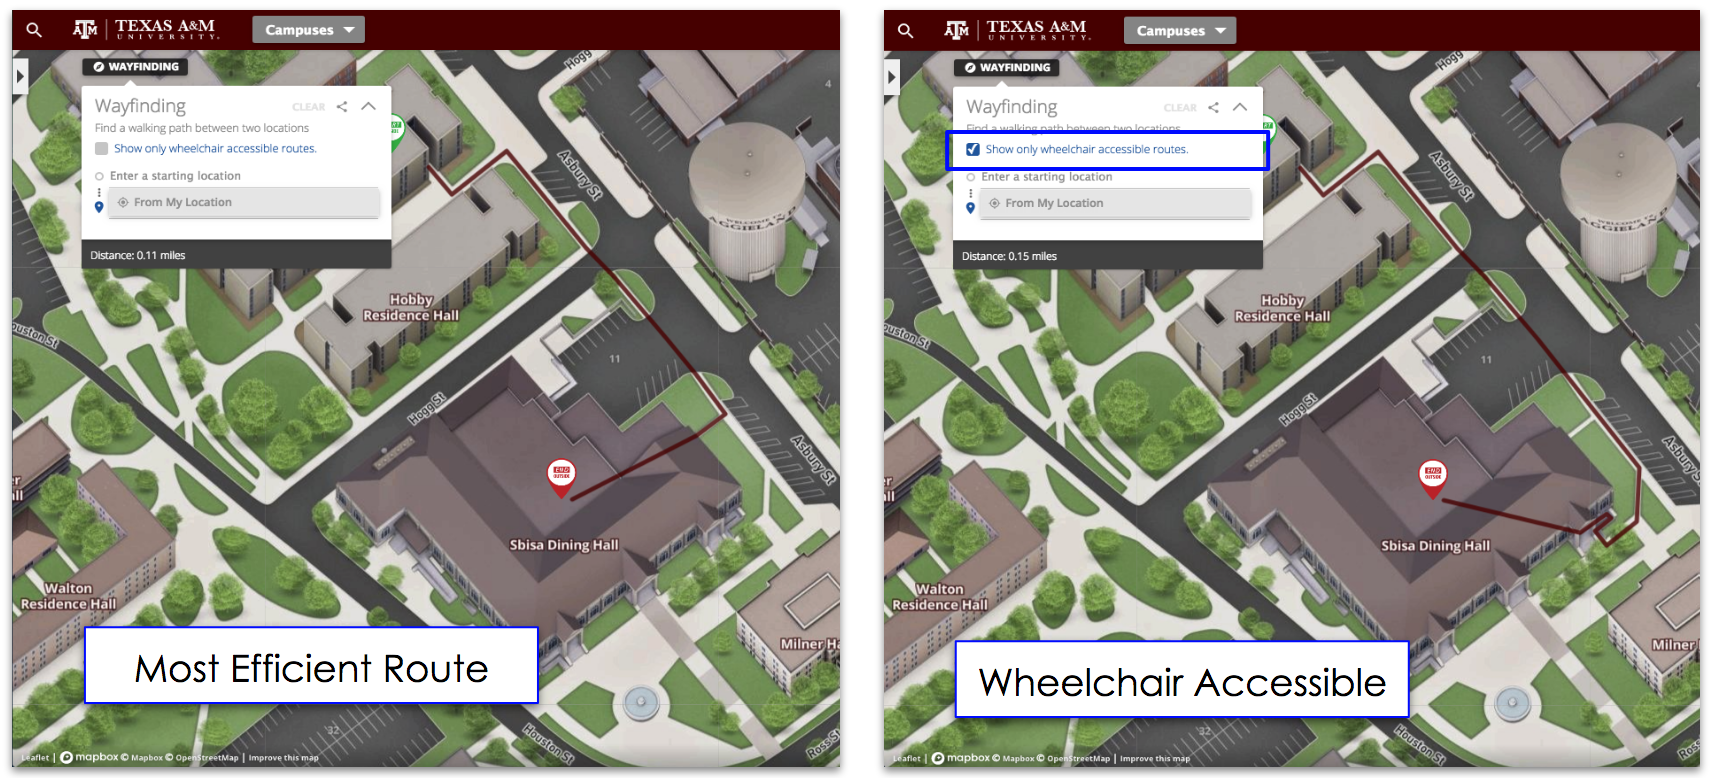 Wayfinding :: Wheelchair Accessible Routes